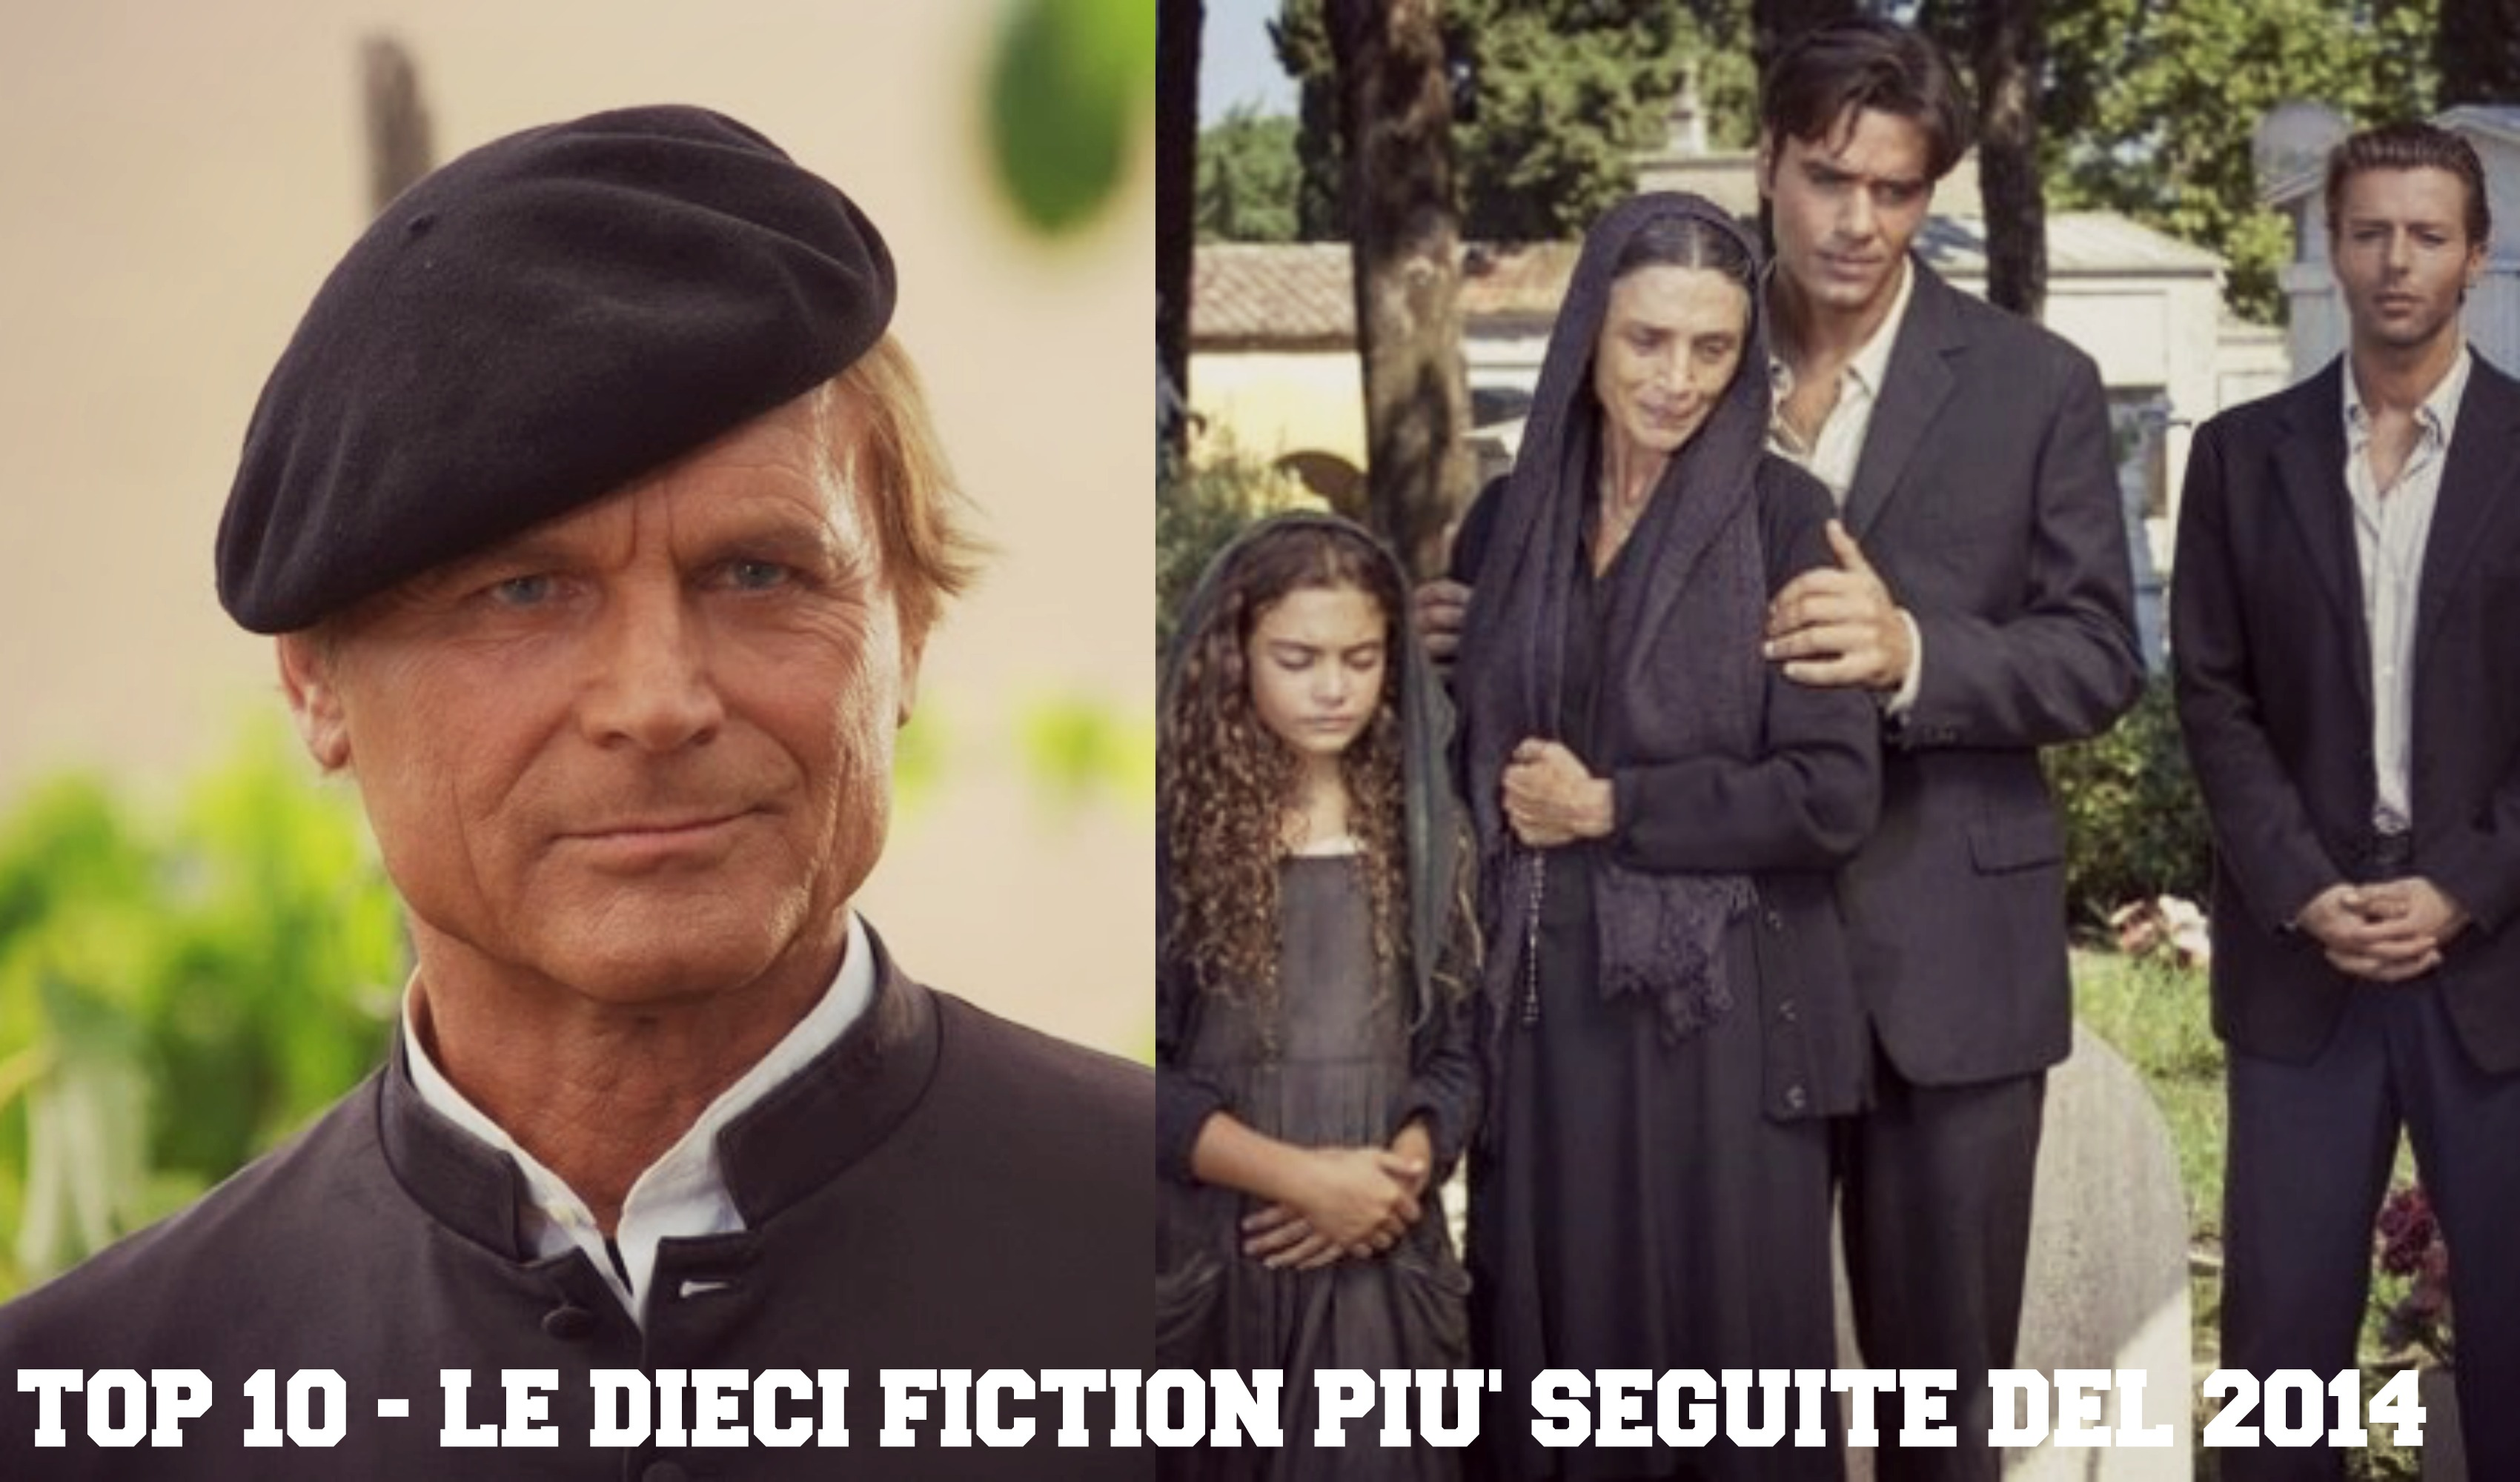 TOP 10 - LE DIECI FICTION PIU' SEGUITE DEL 2014 fiction